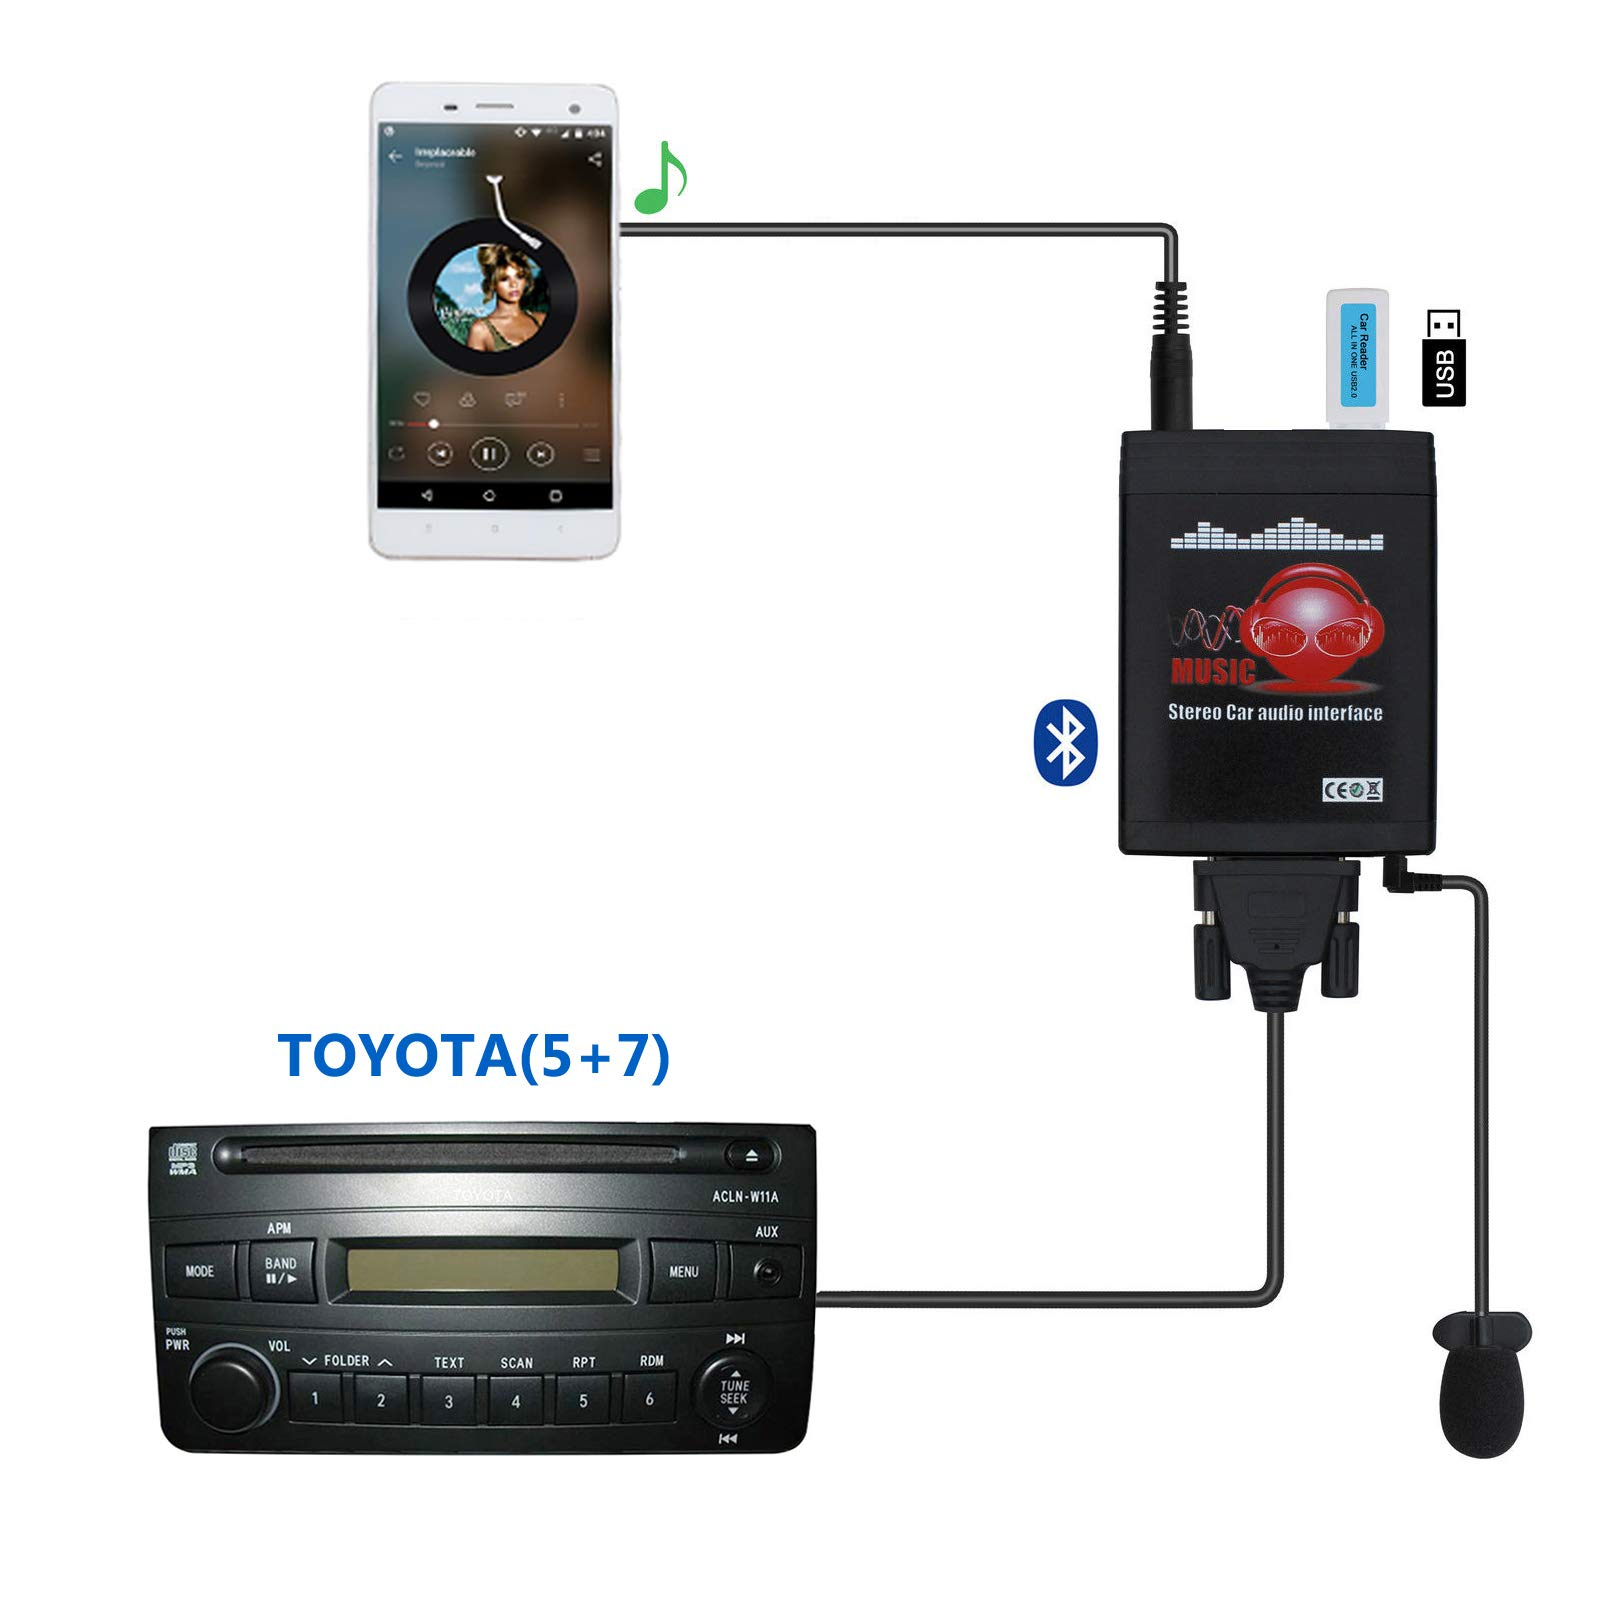 Bluetooth Car Kit, Yomikoo Car MP3 USB/AUX 3.5mm Stereo Wireless Music Receiver Wireless Hands Free Auto Bluetooth Adapter for Toyota (5+7) Pin Camry Corolla Highlander RAV4 Yaris Lexus is GS LS by Yomikoo